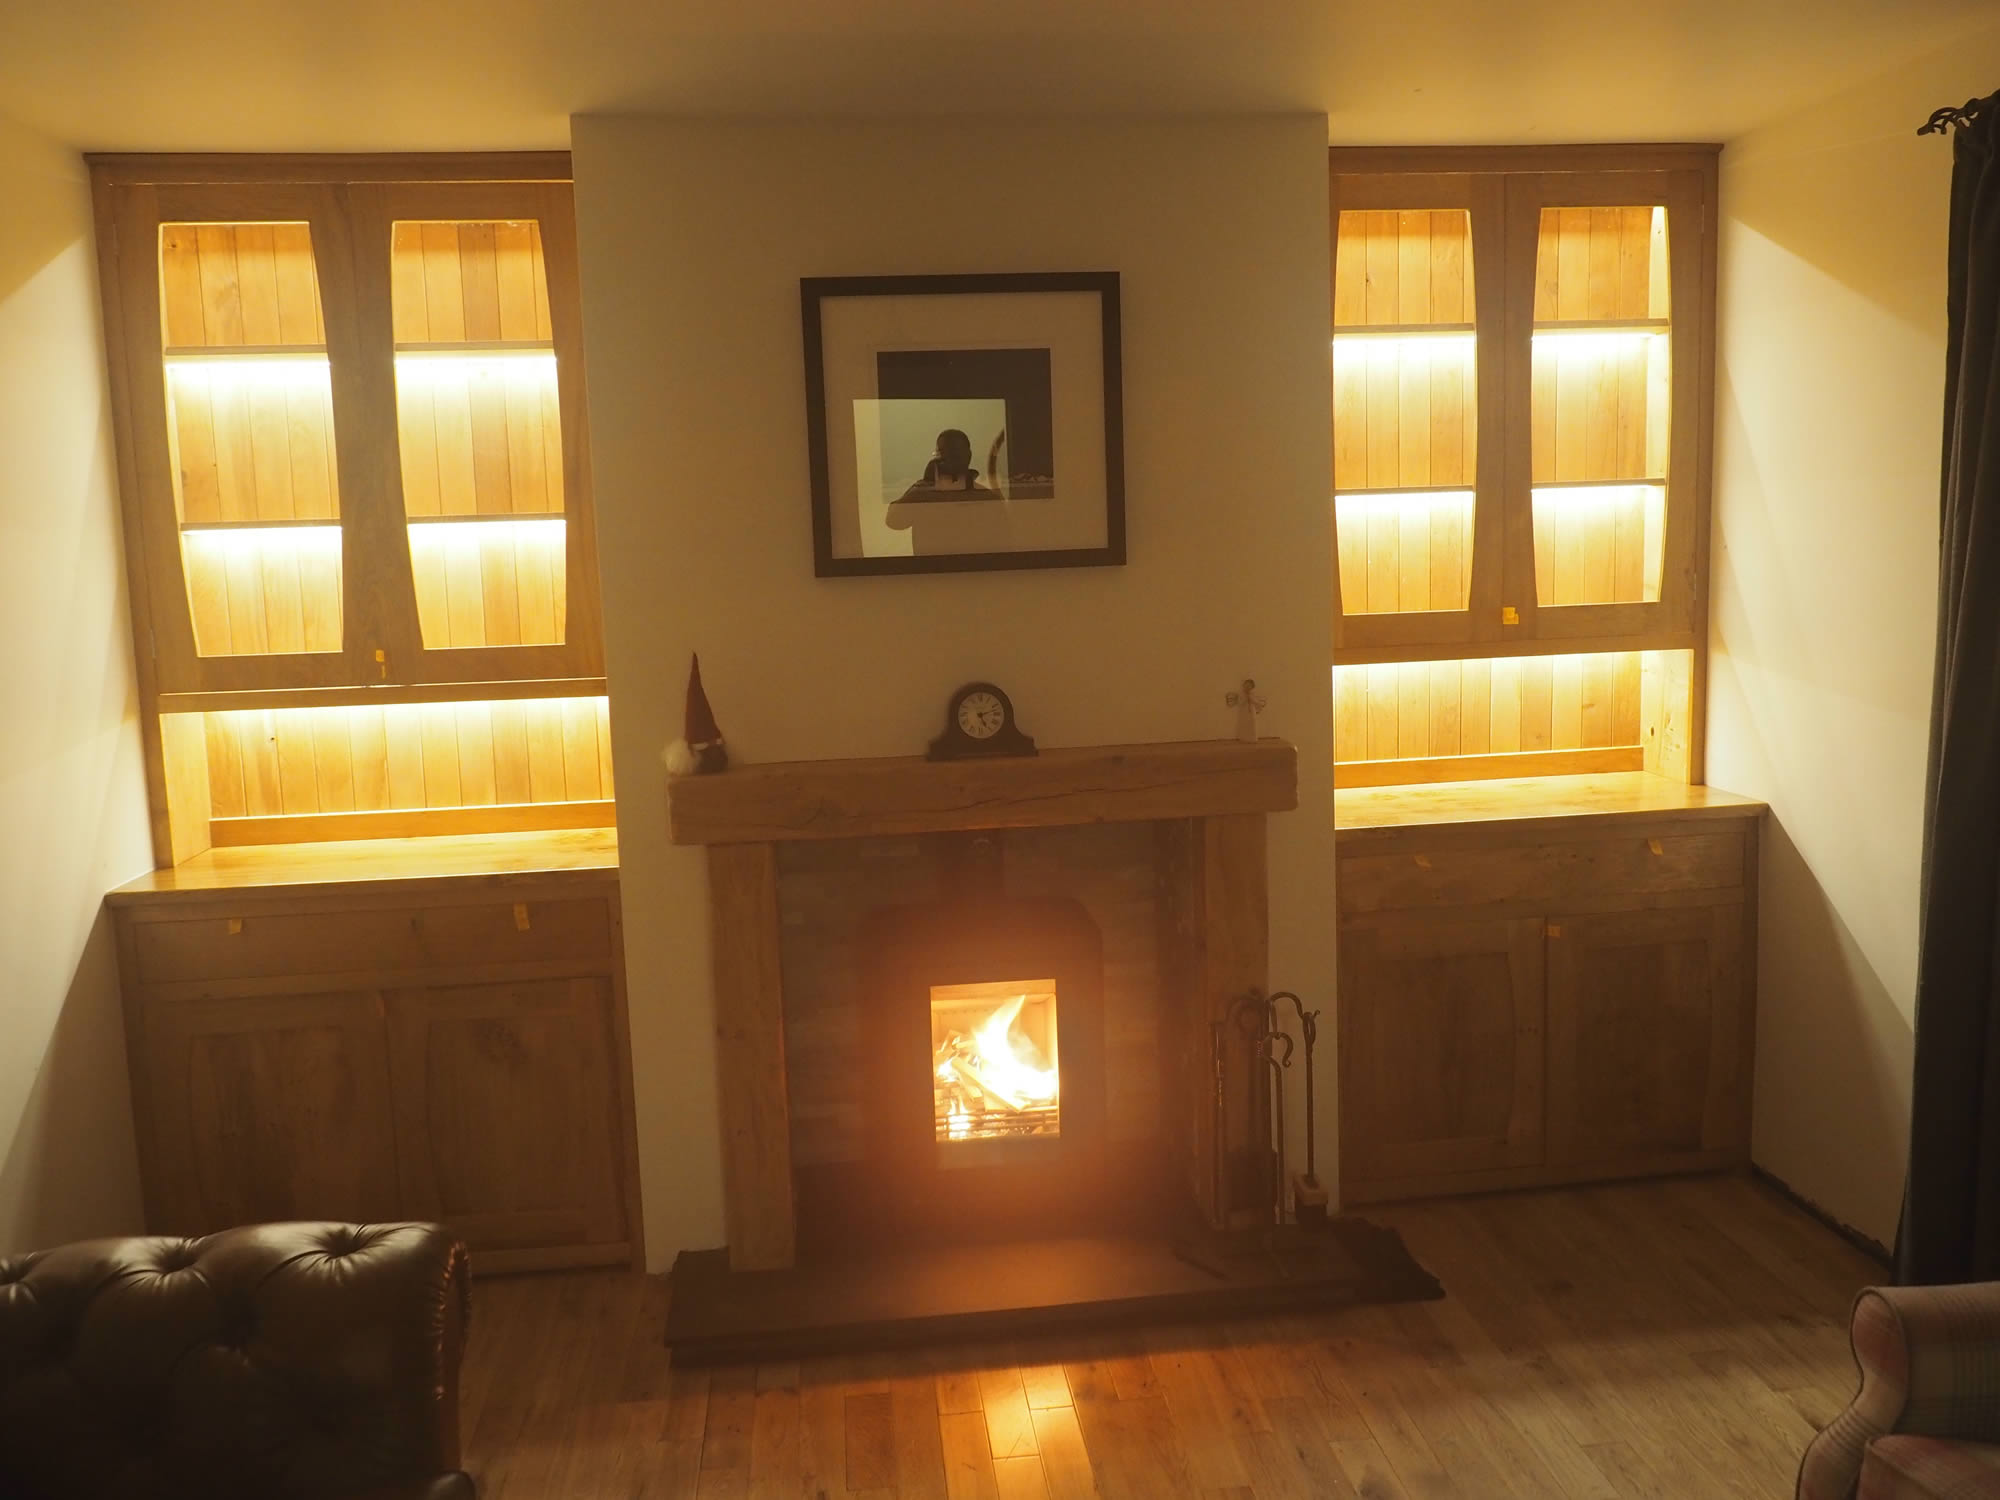 Whisky cabinets